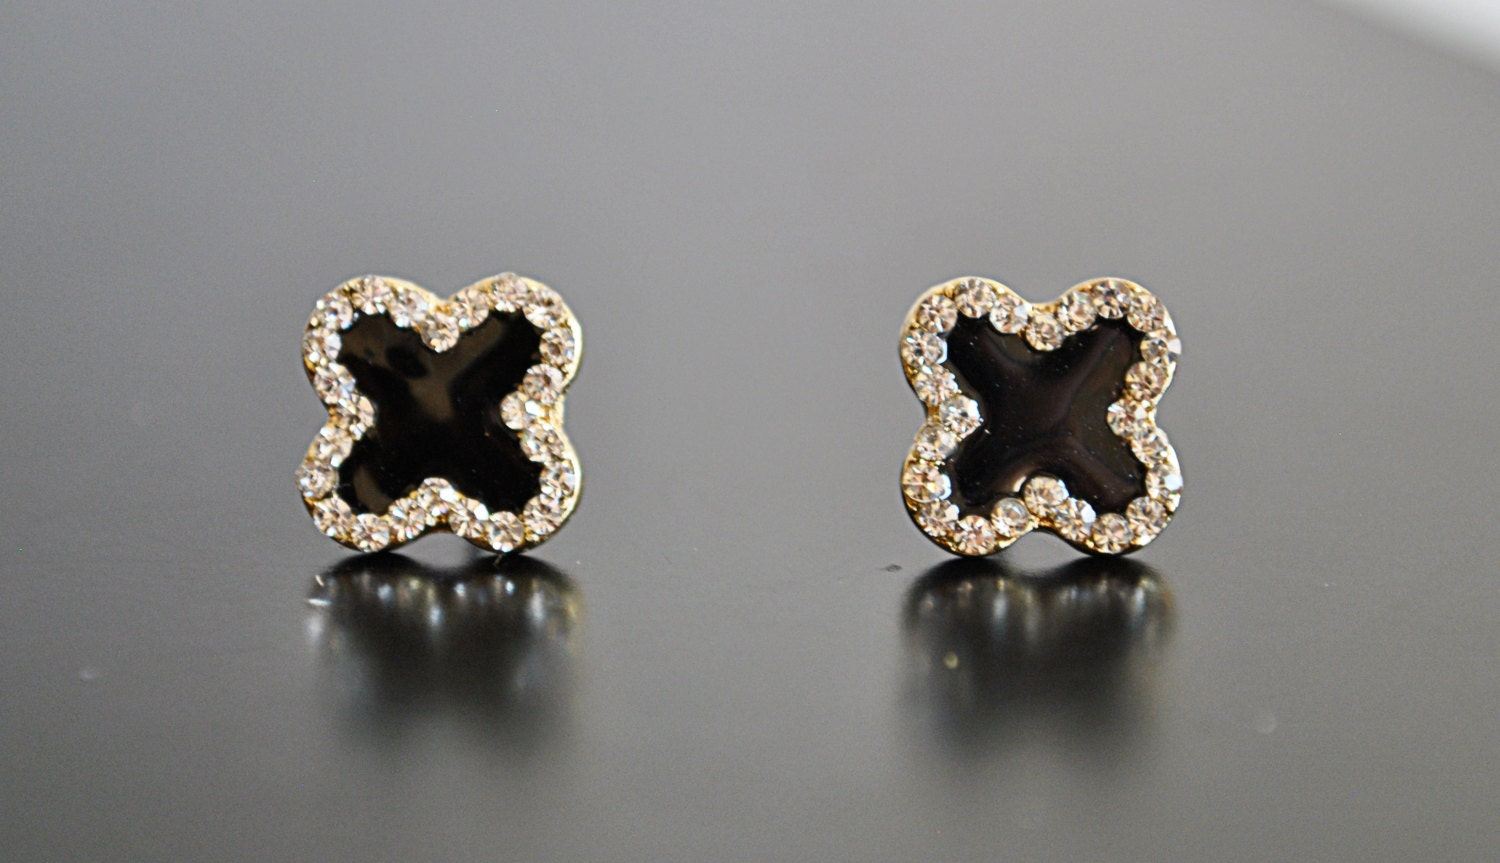 clover earrings studs black clover studs earrings sale 5104